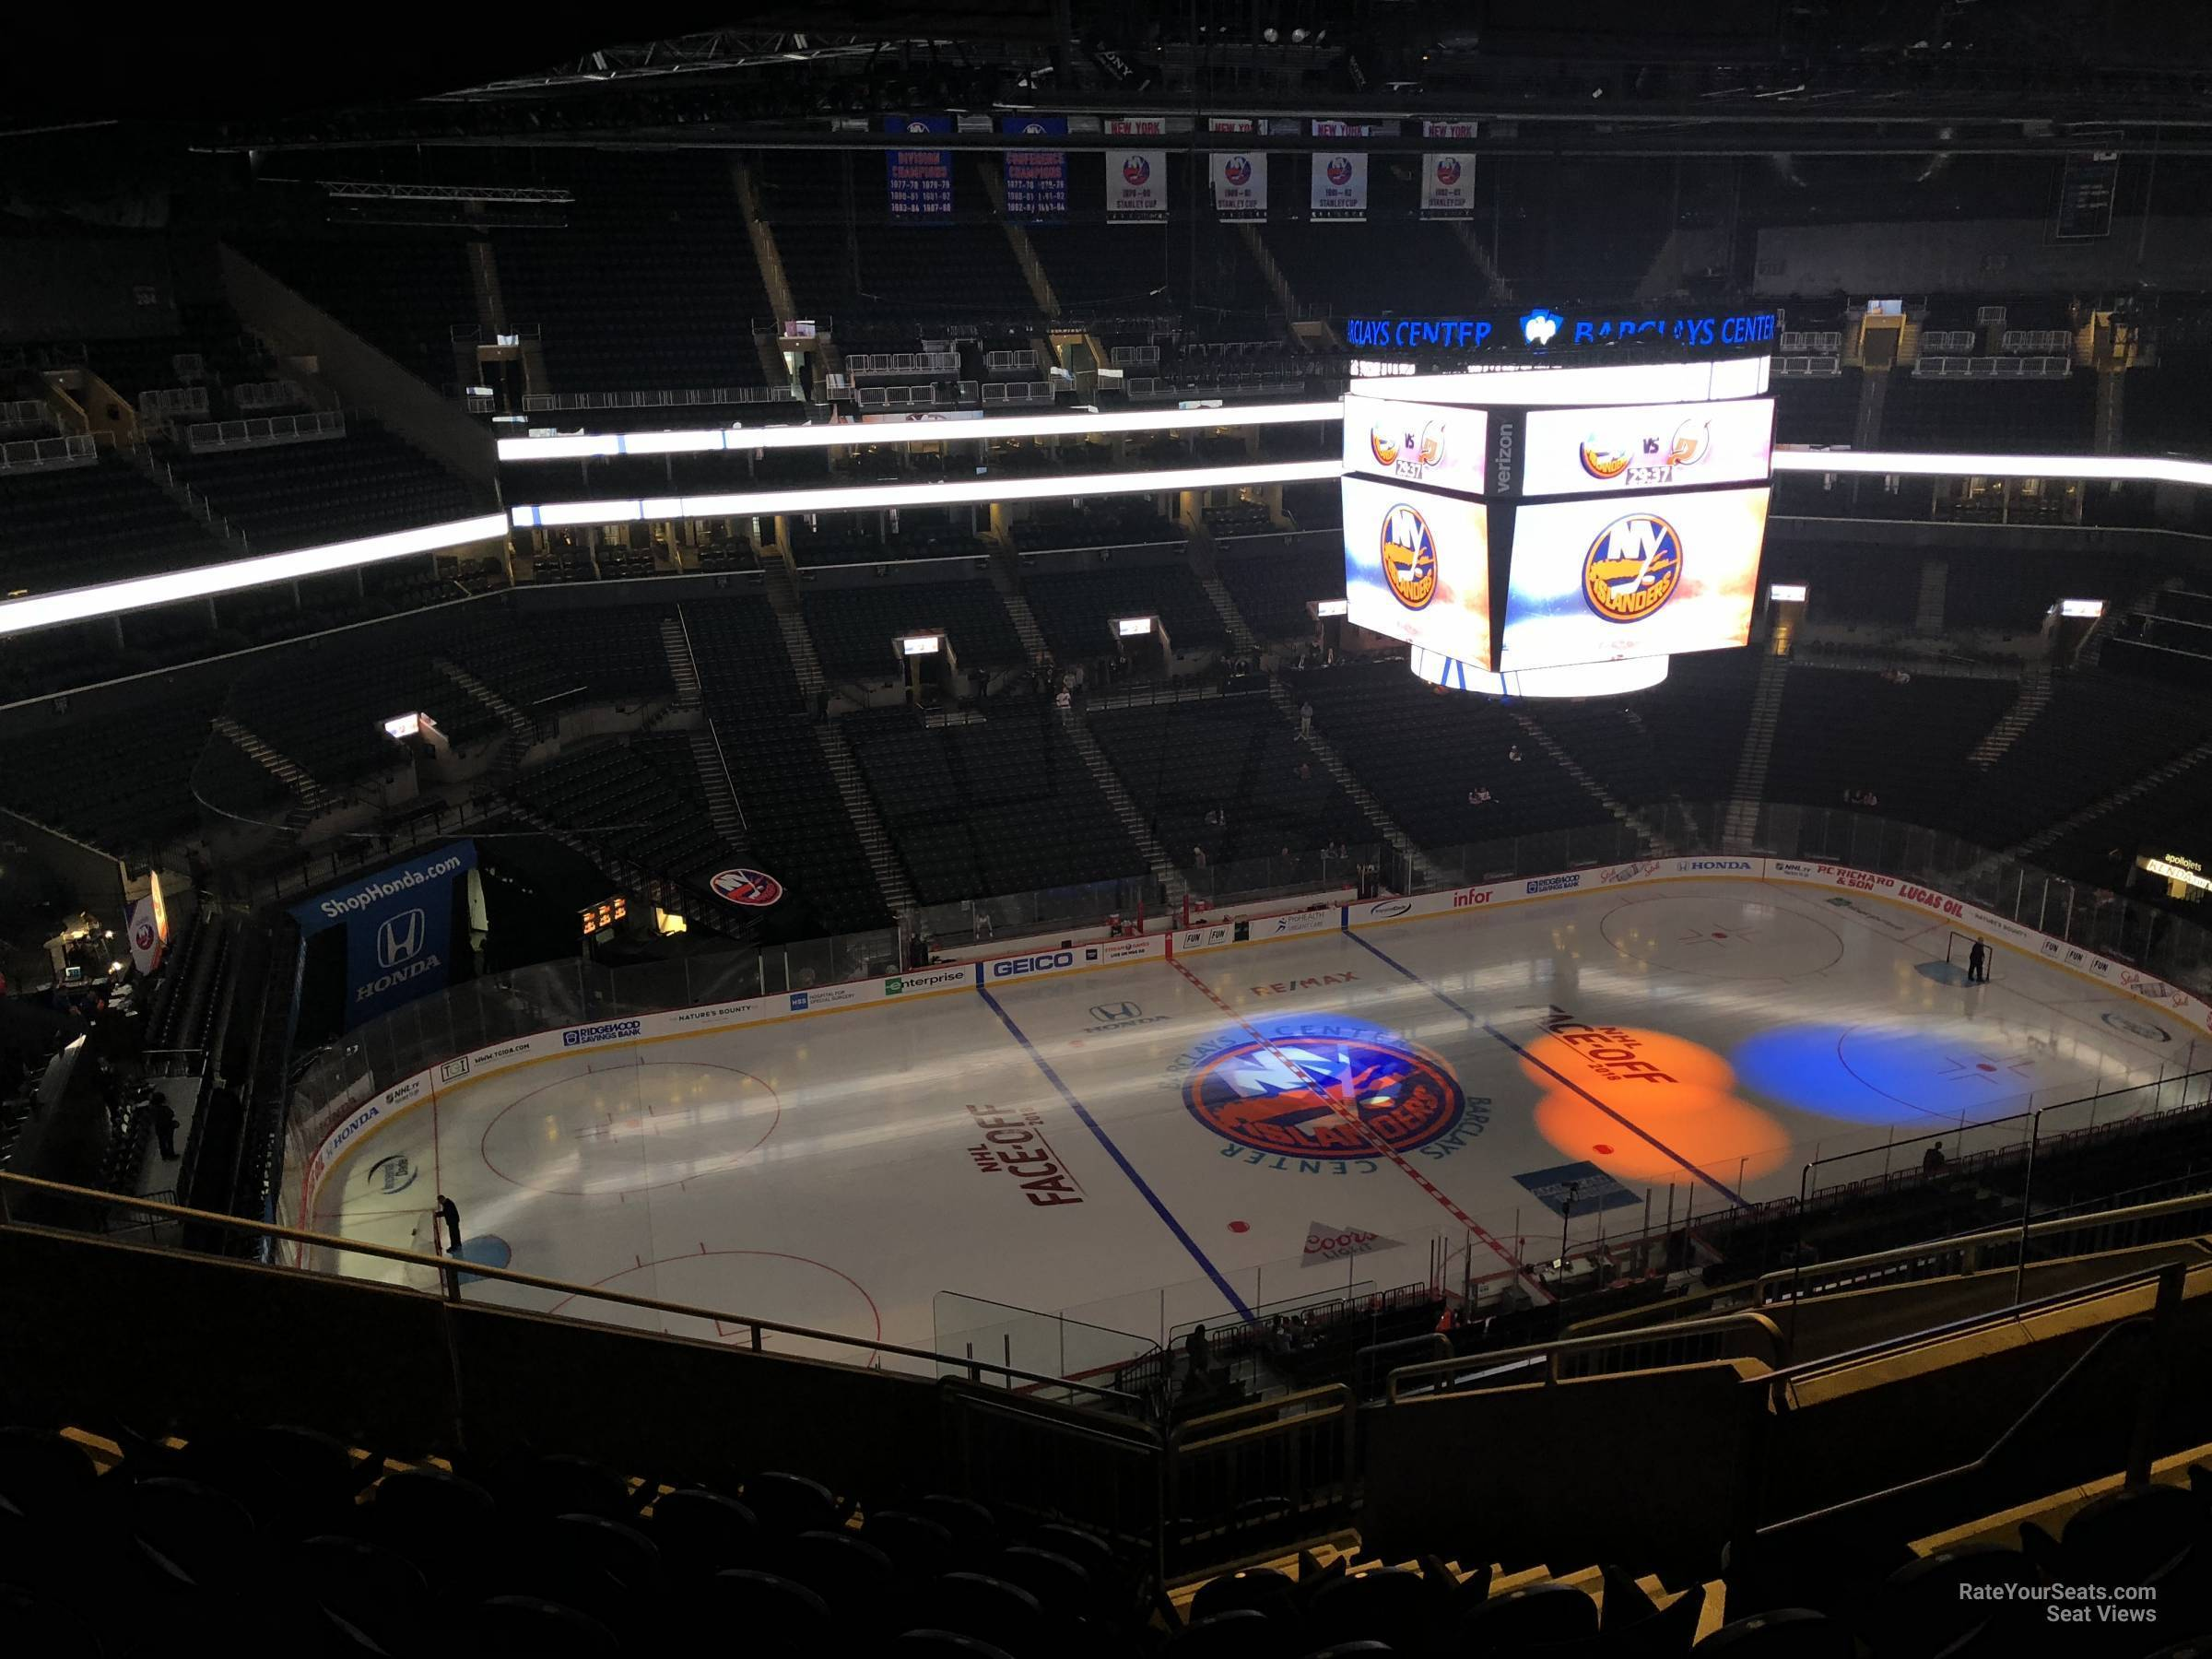 barclays center section 227 - new york islanders - rateyourseats